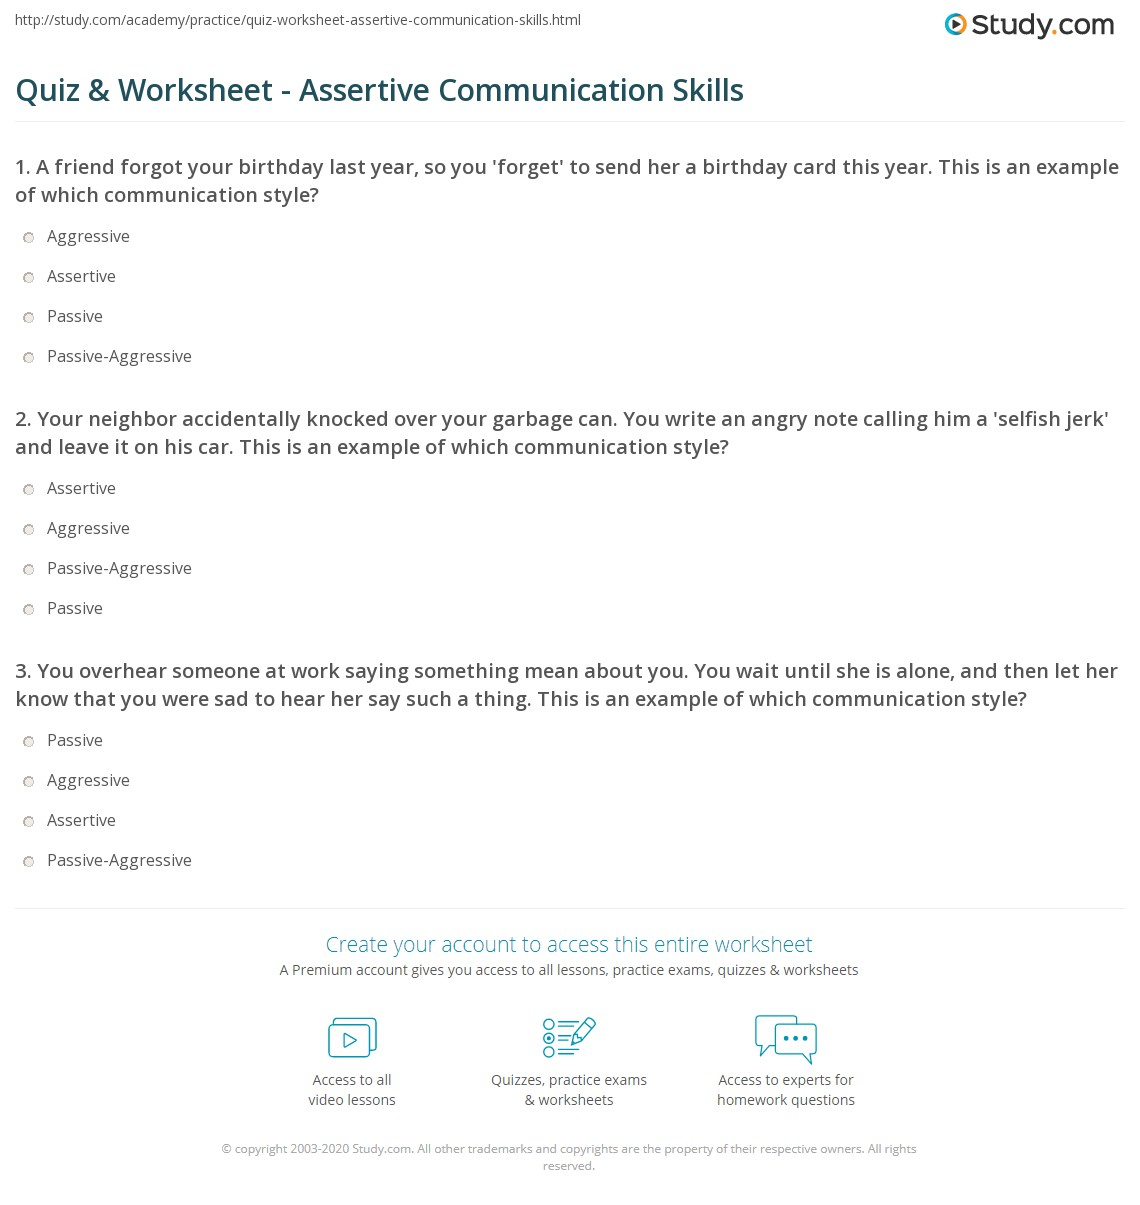 Worksheets Assertiveness Training Worksheets quiz worksheet assertive communication skills study com 1 your neighbor accidentally knocked over garbage can you write an angry note calling him a selfish jerk and leave it on his car